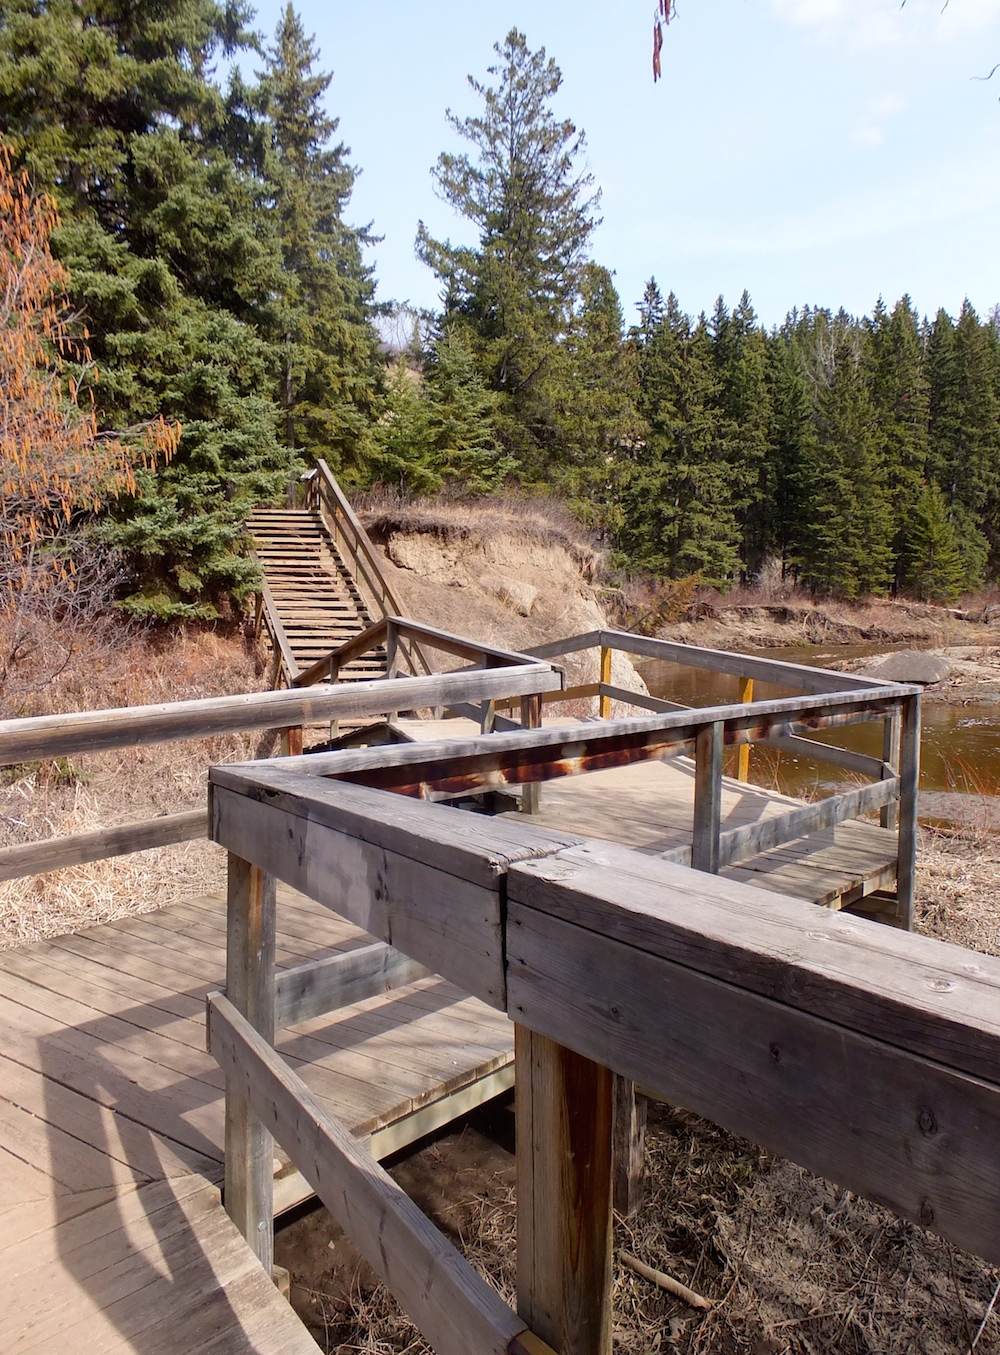 To the right of the boardwalk-Whitemud Creek. To the left, a new monkey trail.